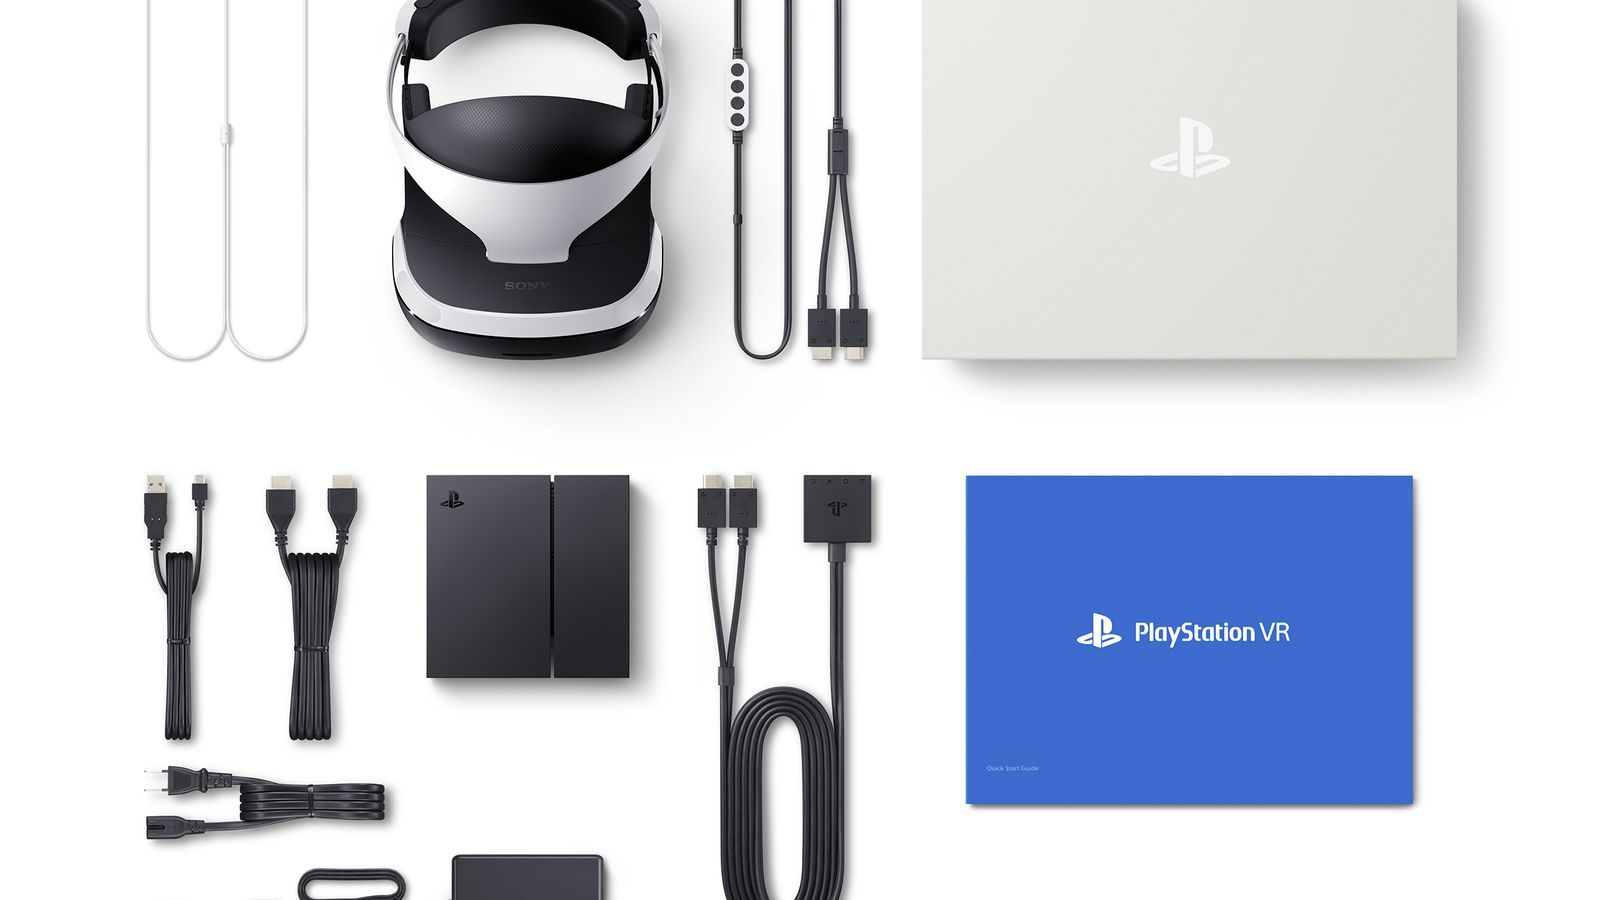 playstation vr requires about 60 square feet of space to use and other new details polygon - playstation vr fortnite